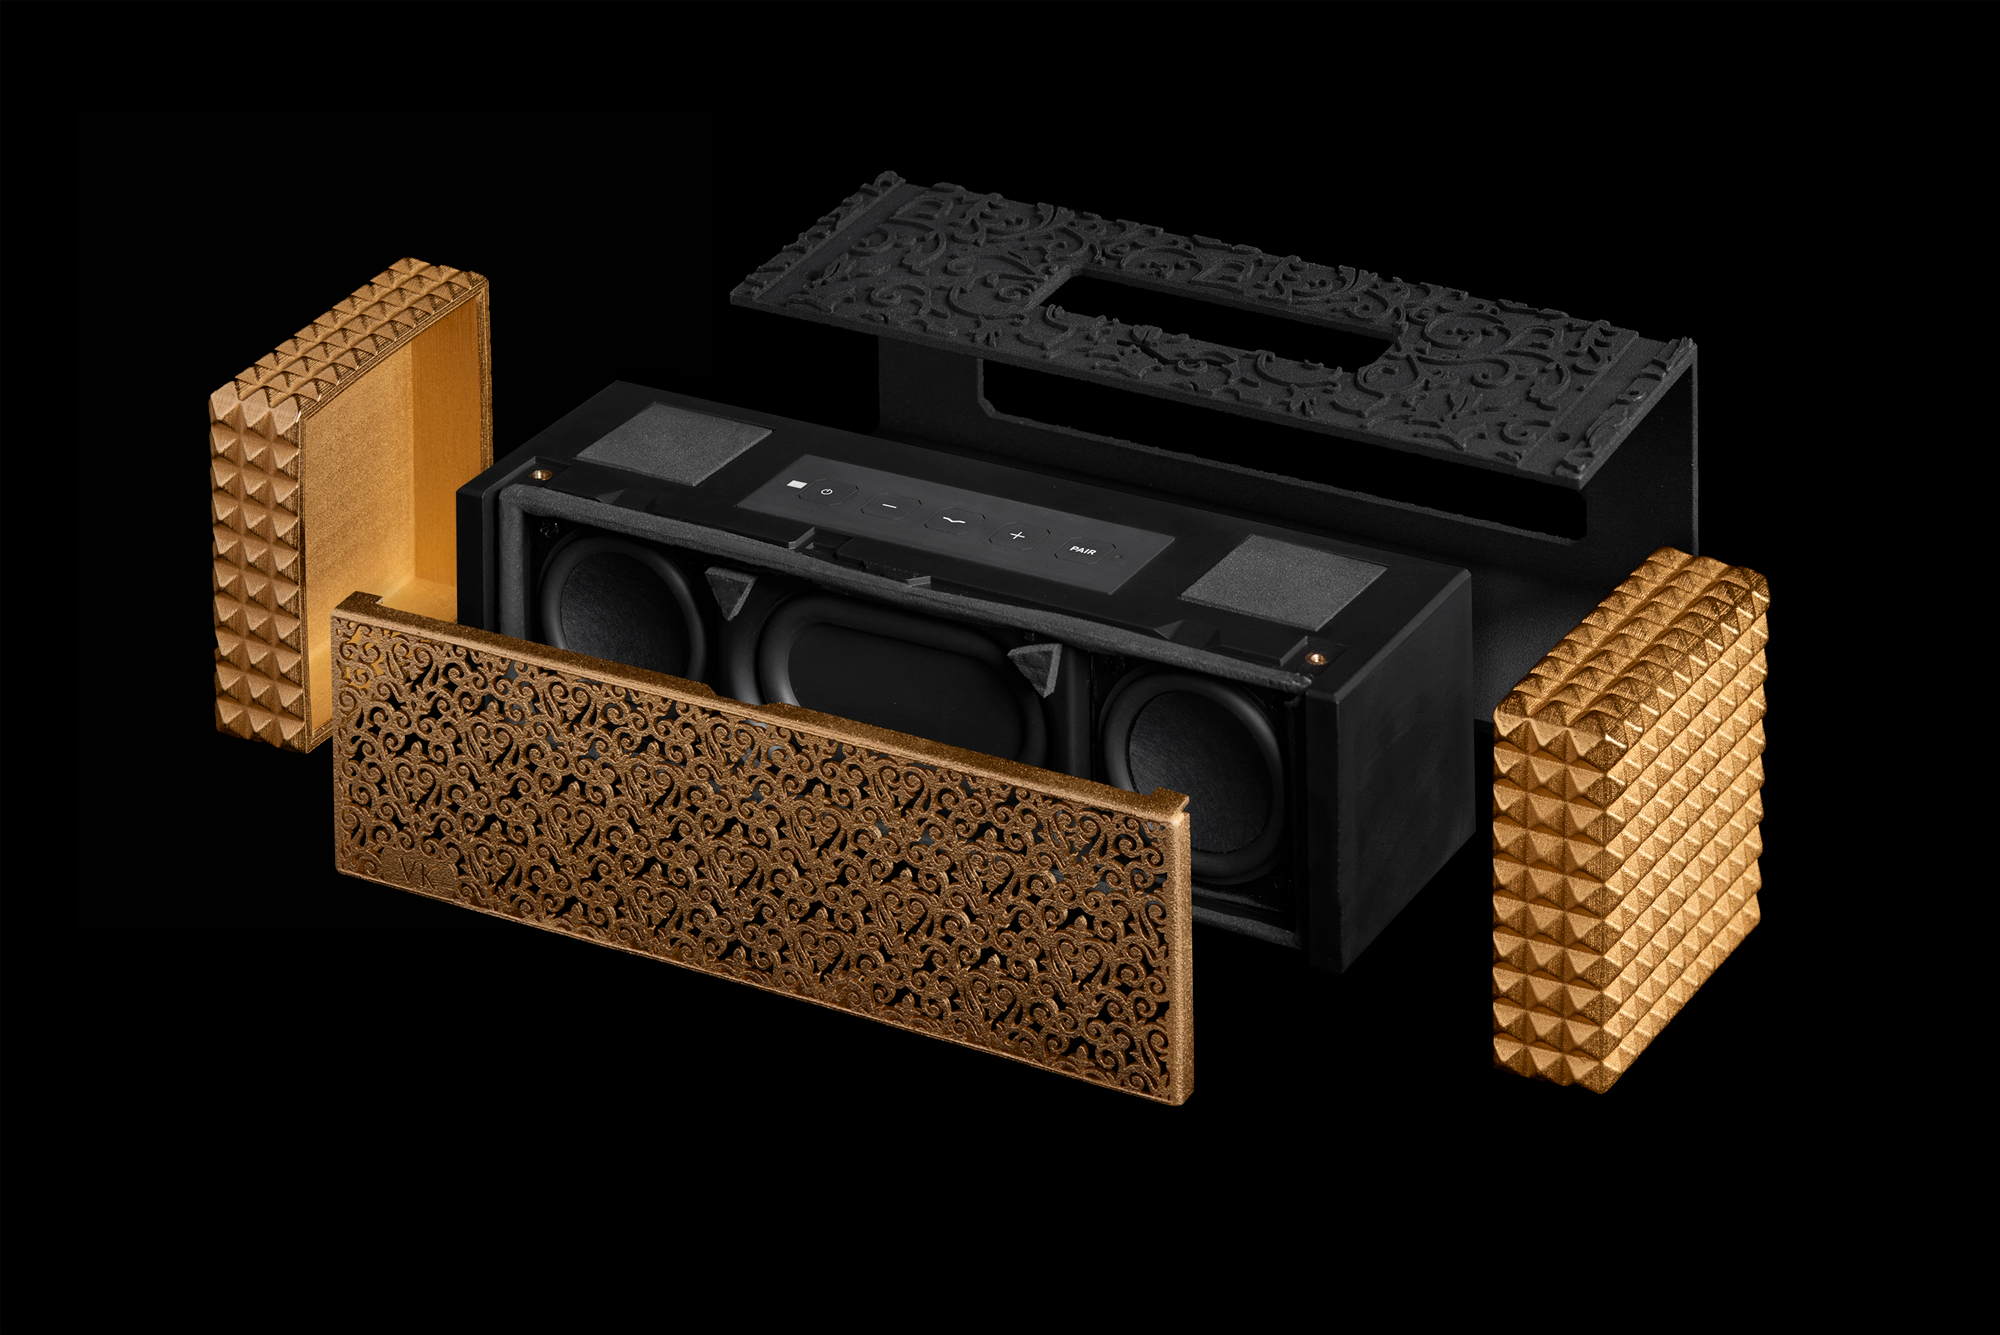 Moda gets into the wireless speaker game with the Remix